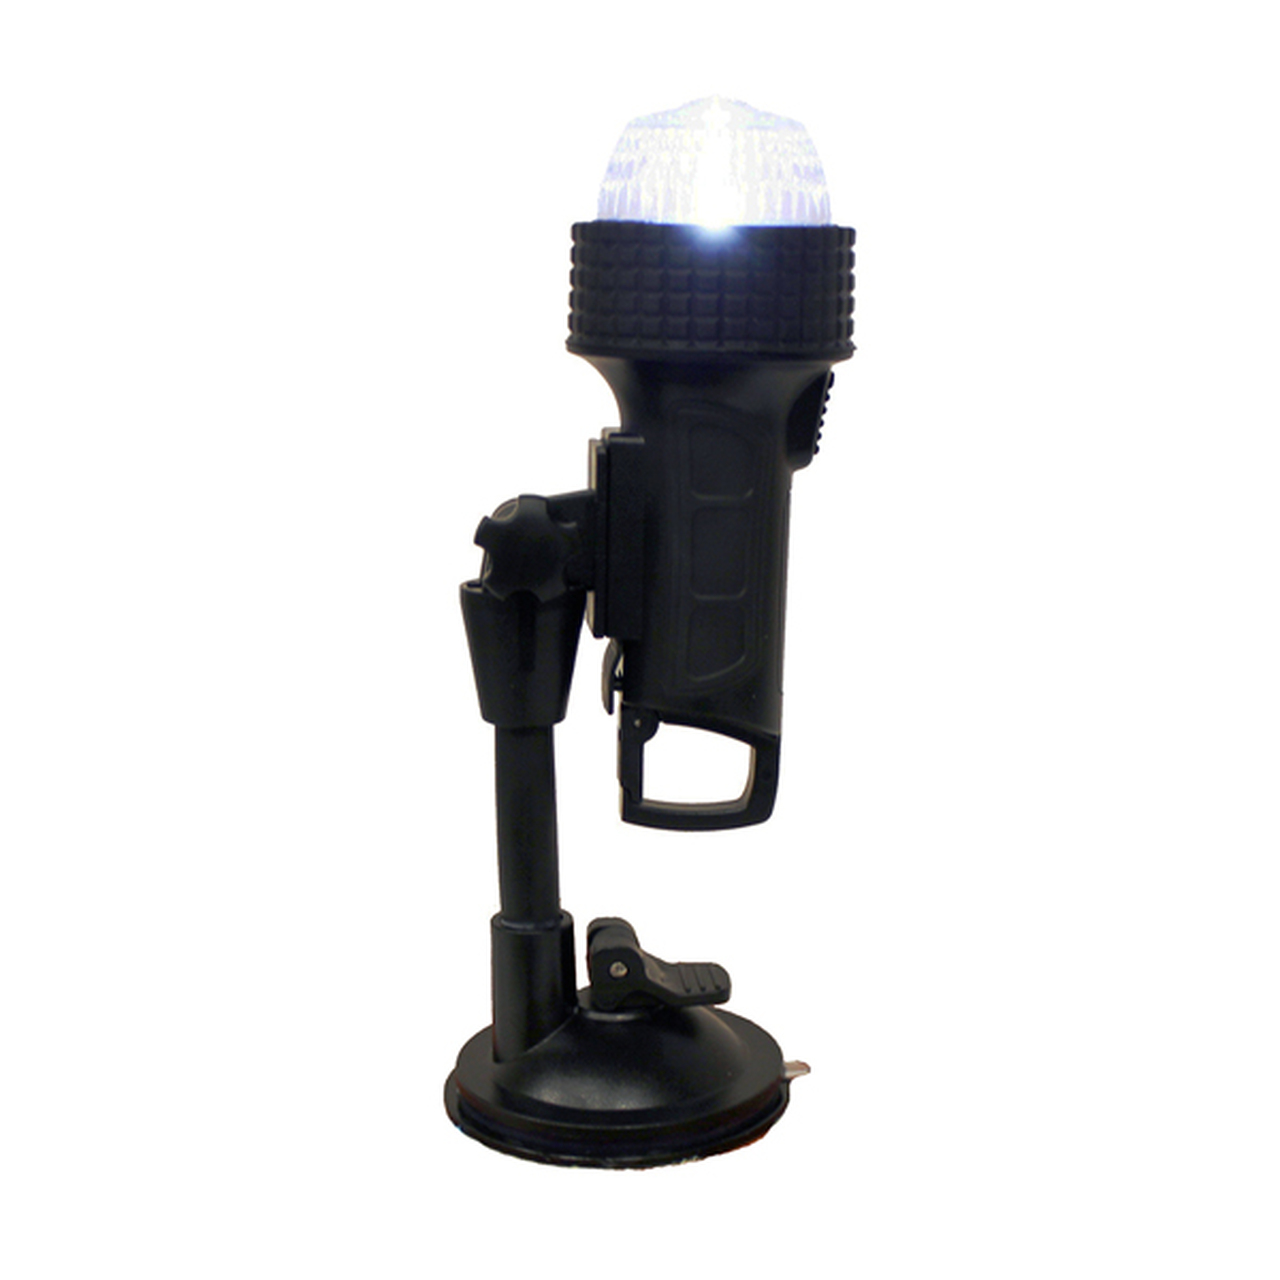 Anchor White LED 2 xLED Navigation Lights Portable Suction Cap Mount Included